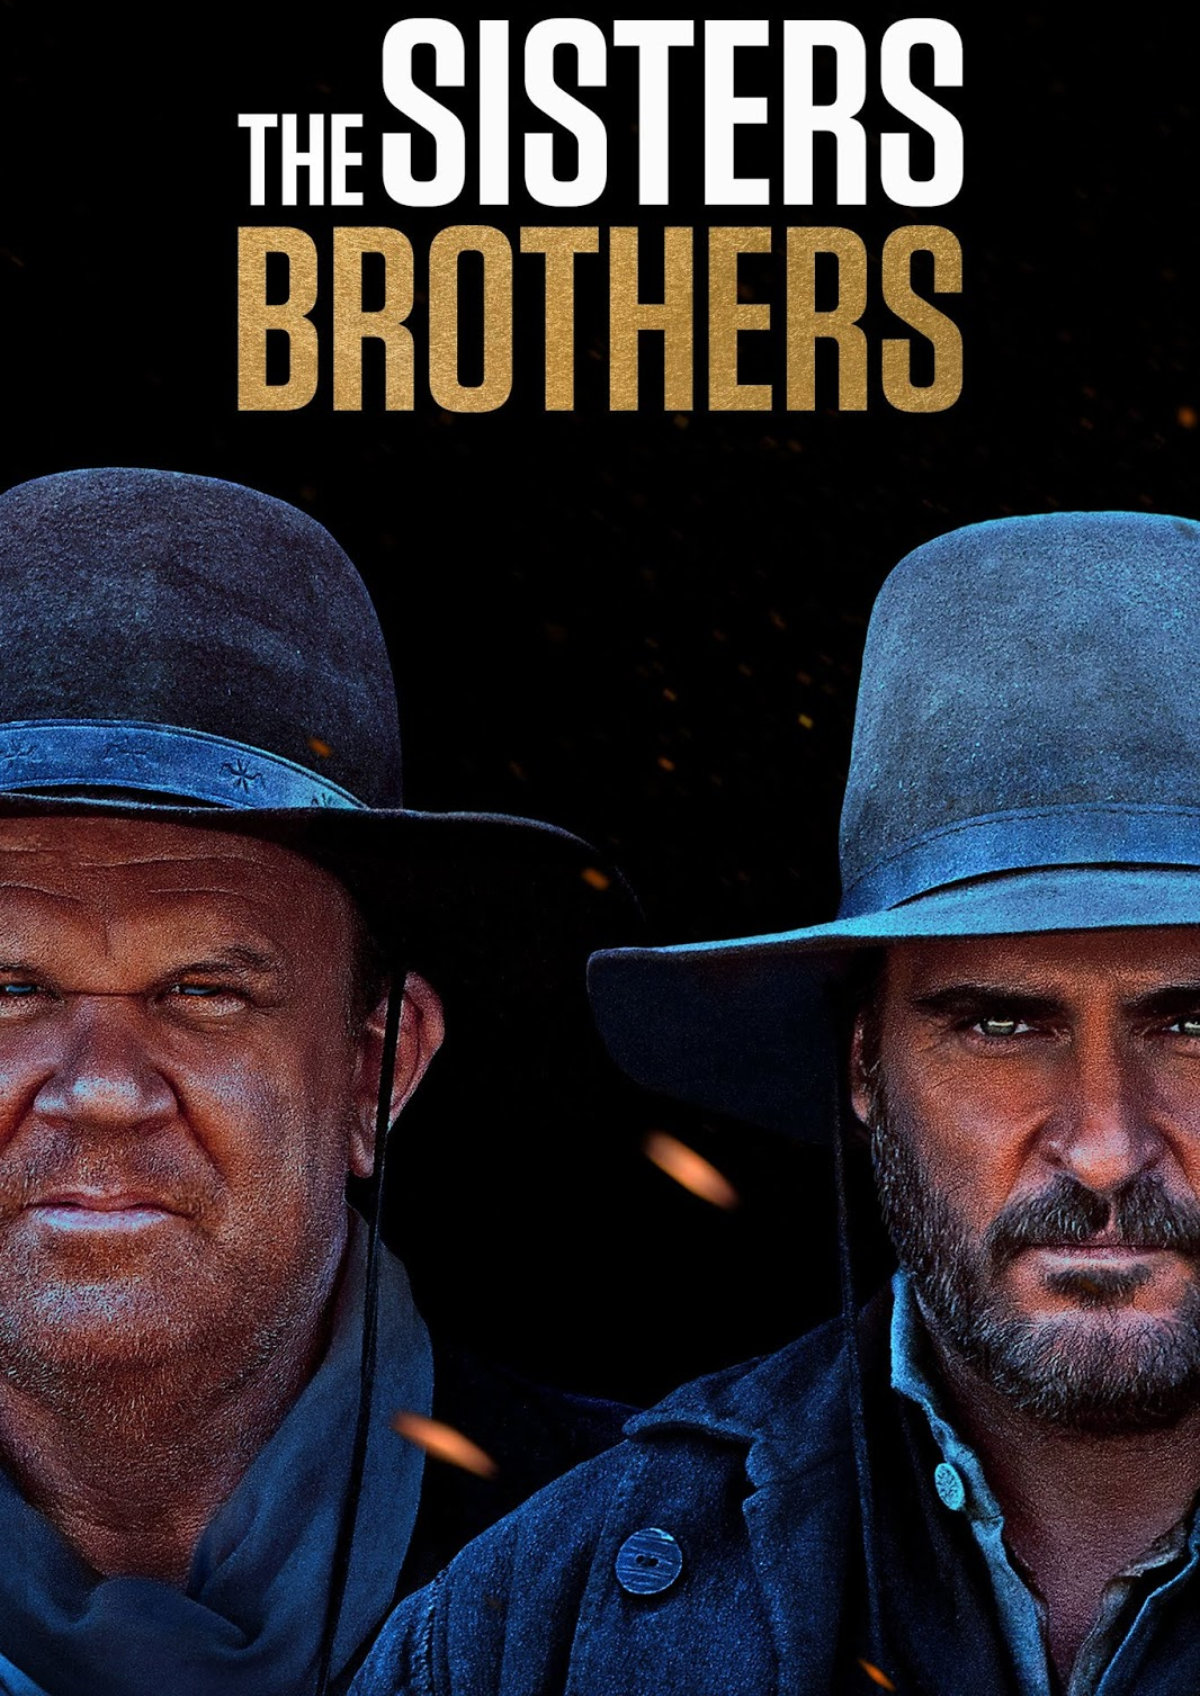 'The Sisters Brothers' movie poster